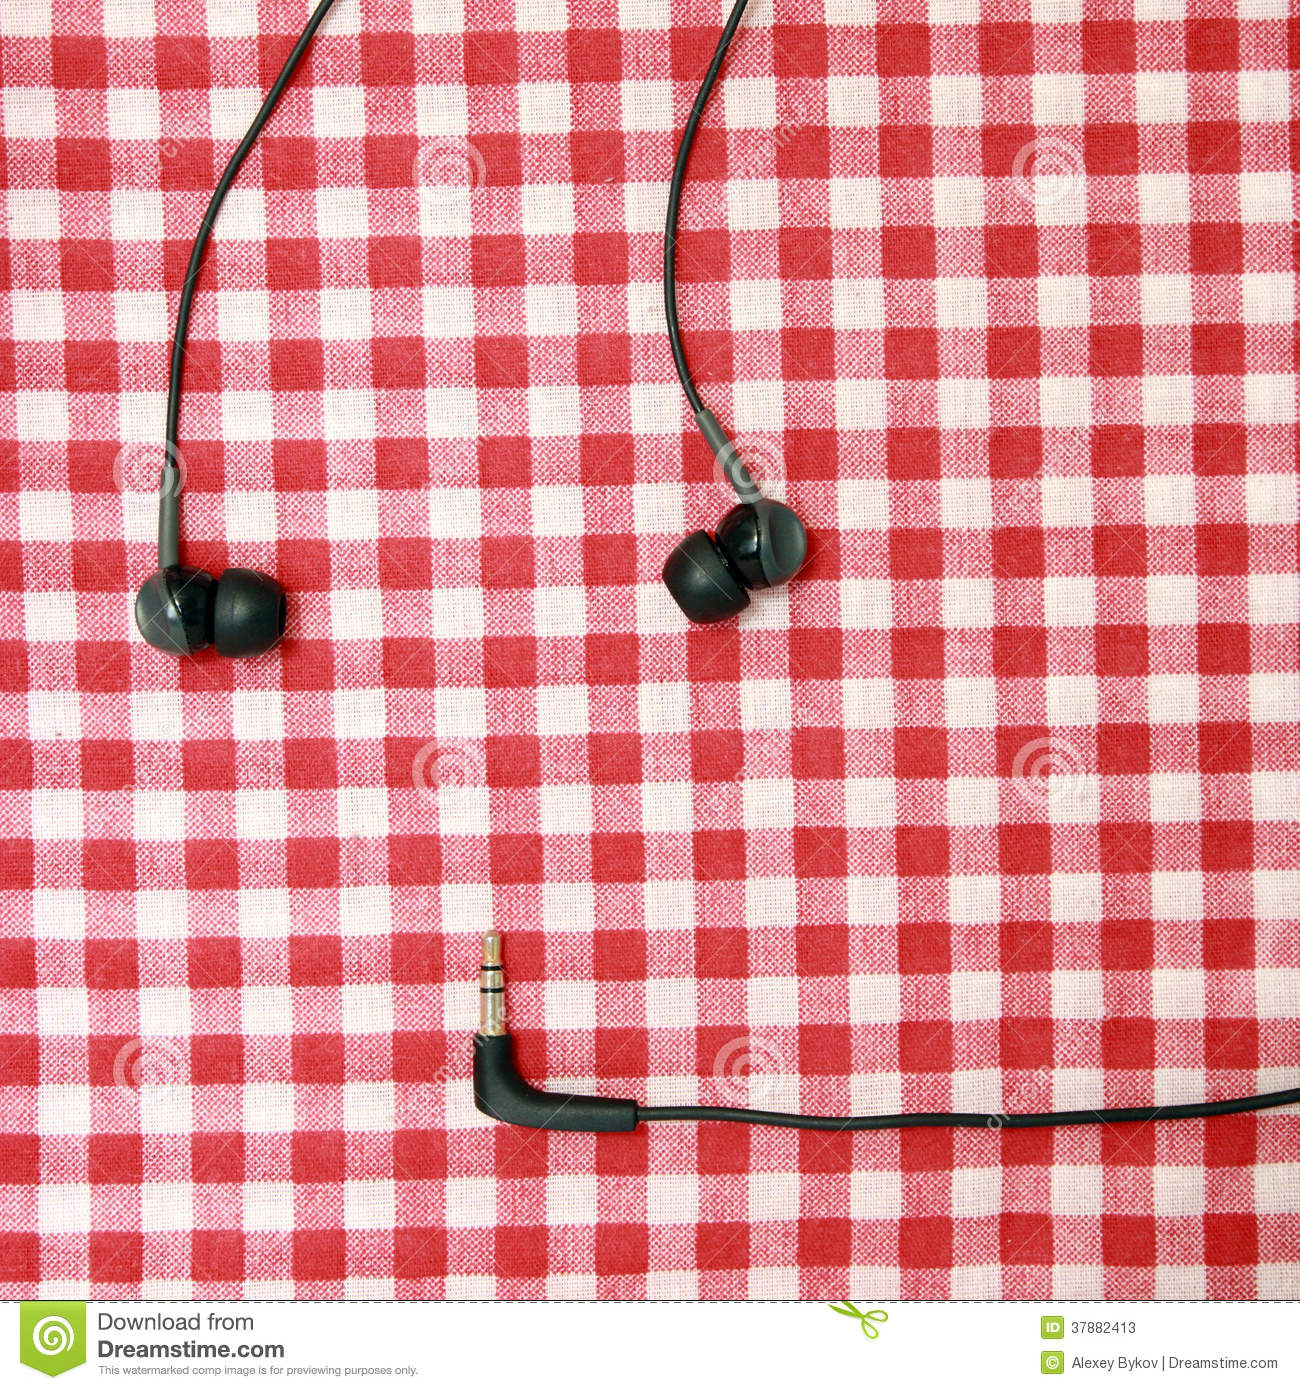 Headphones on a red bed sheet.